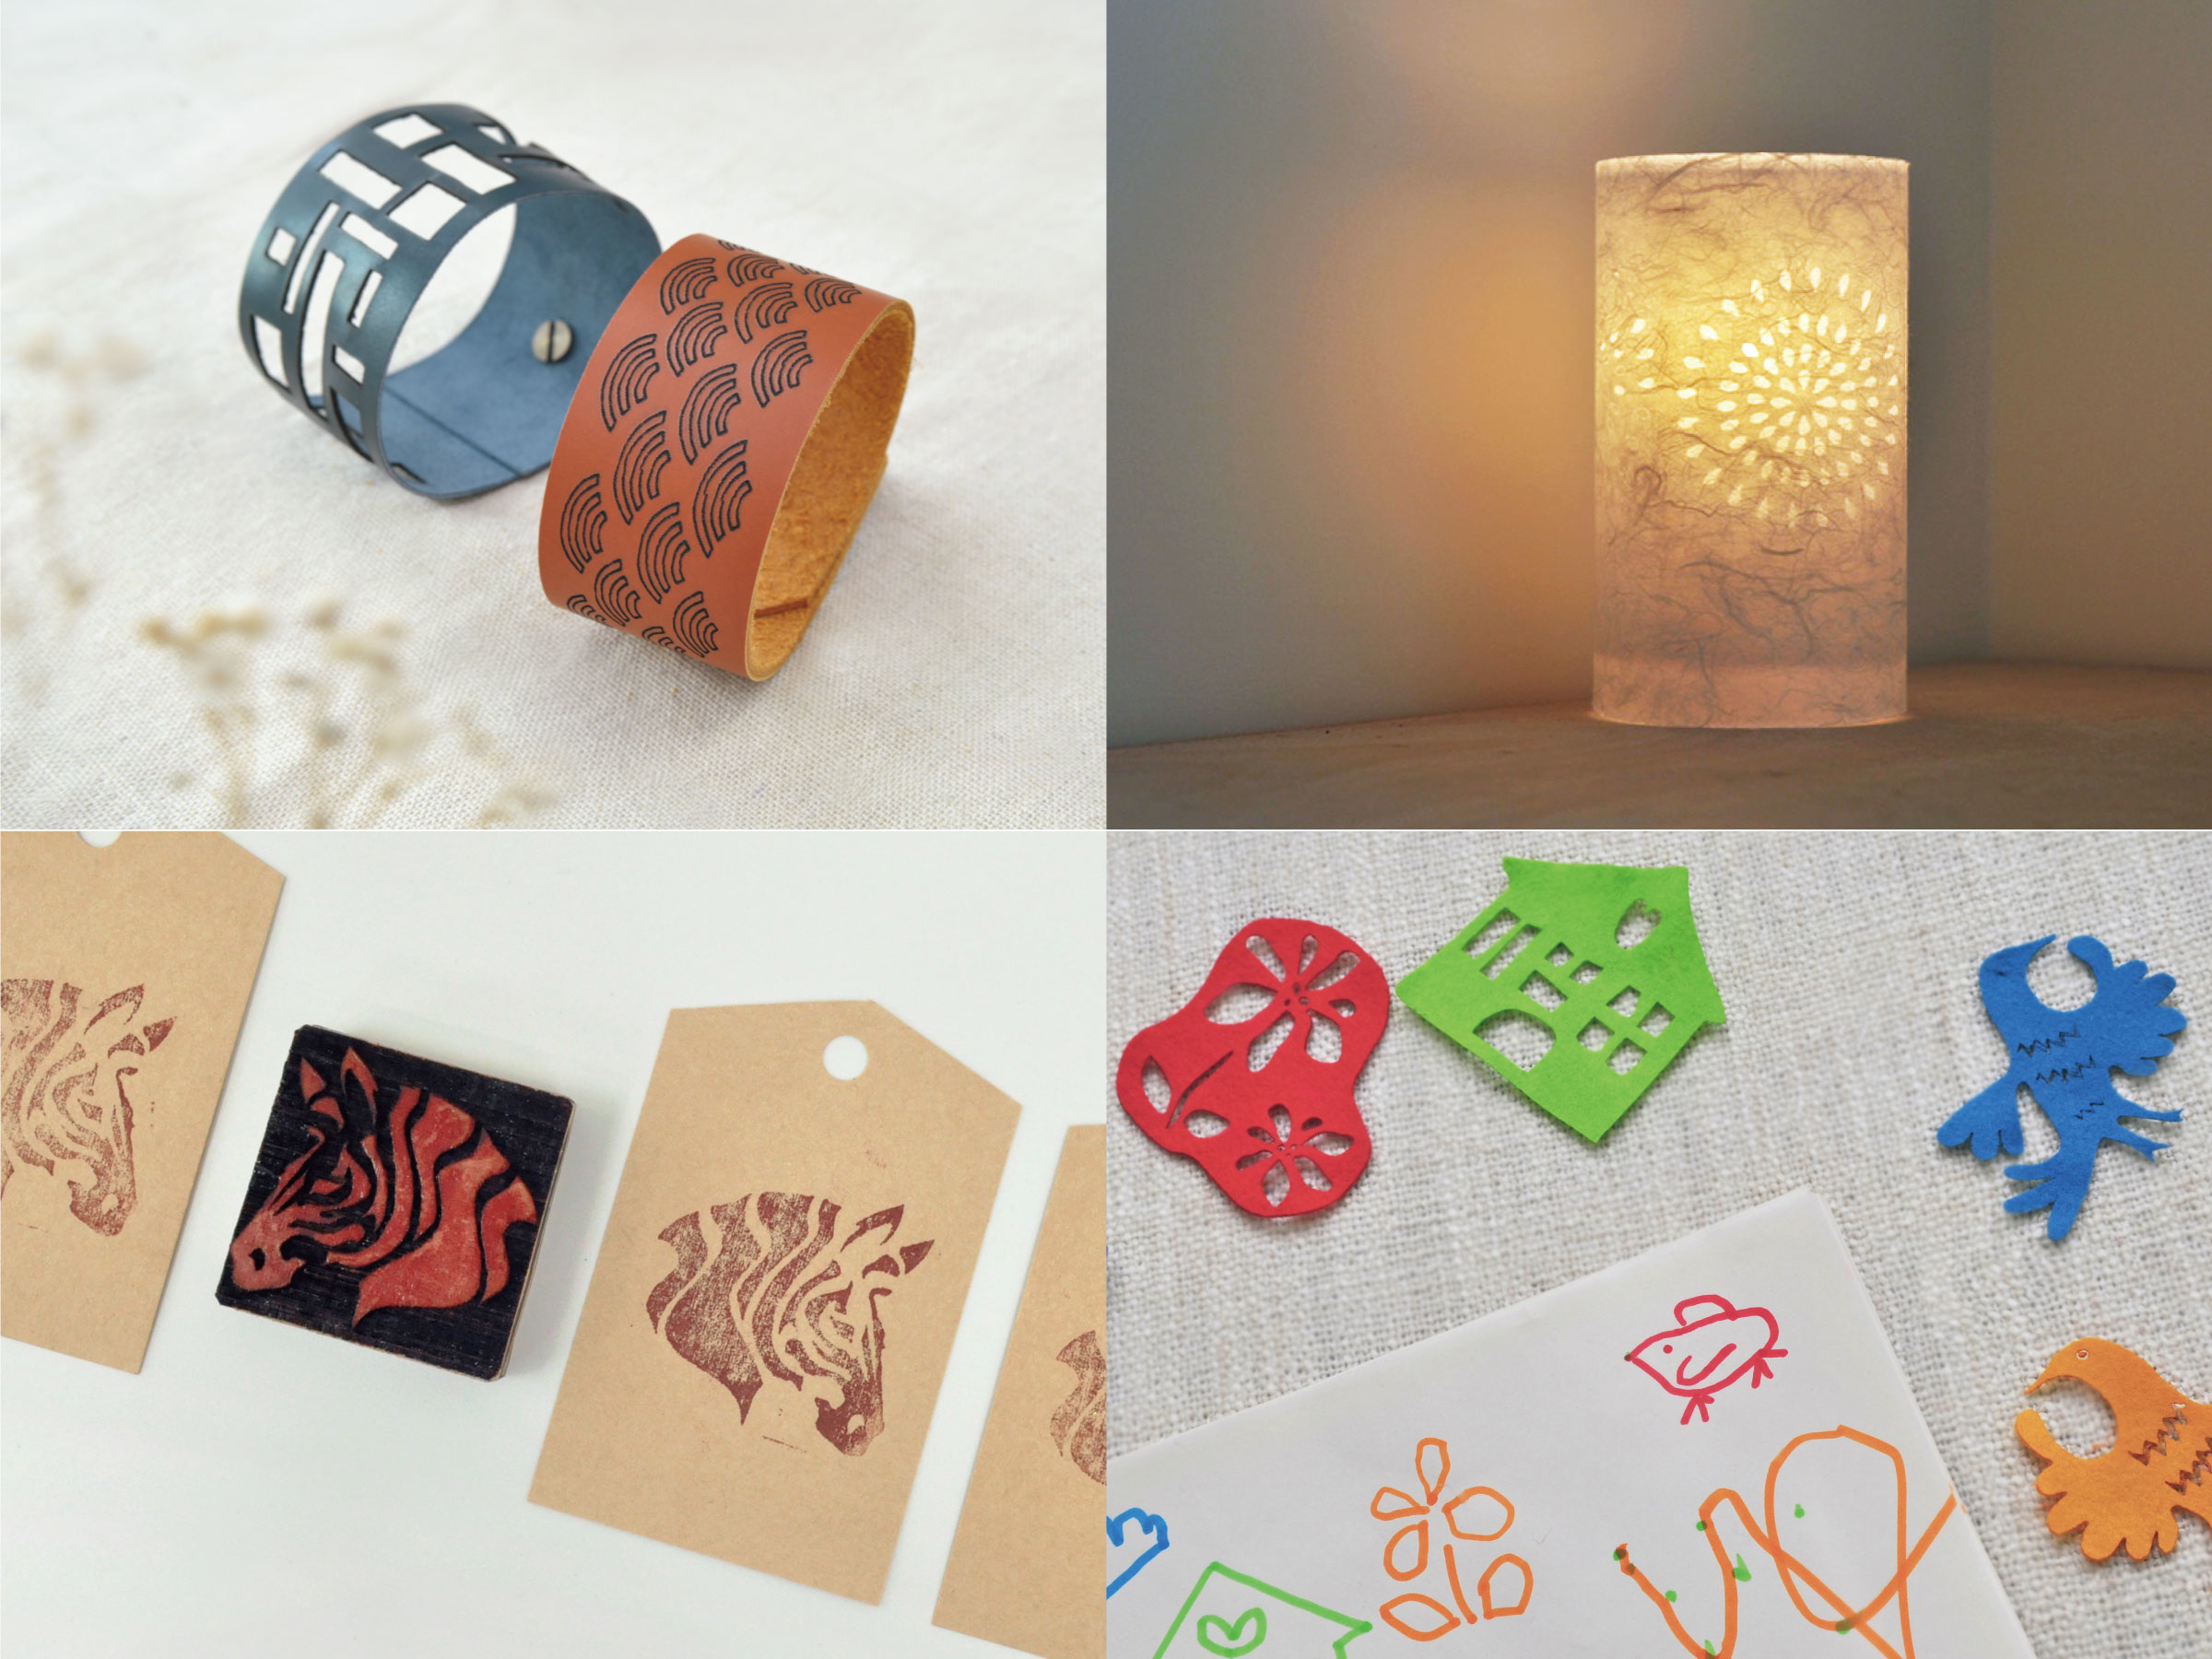 most_compact_laser_engraver_artworks